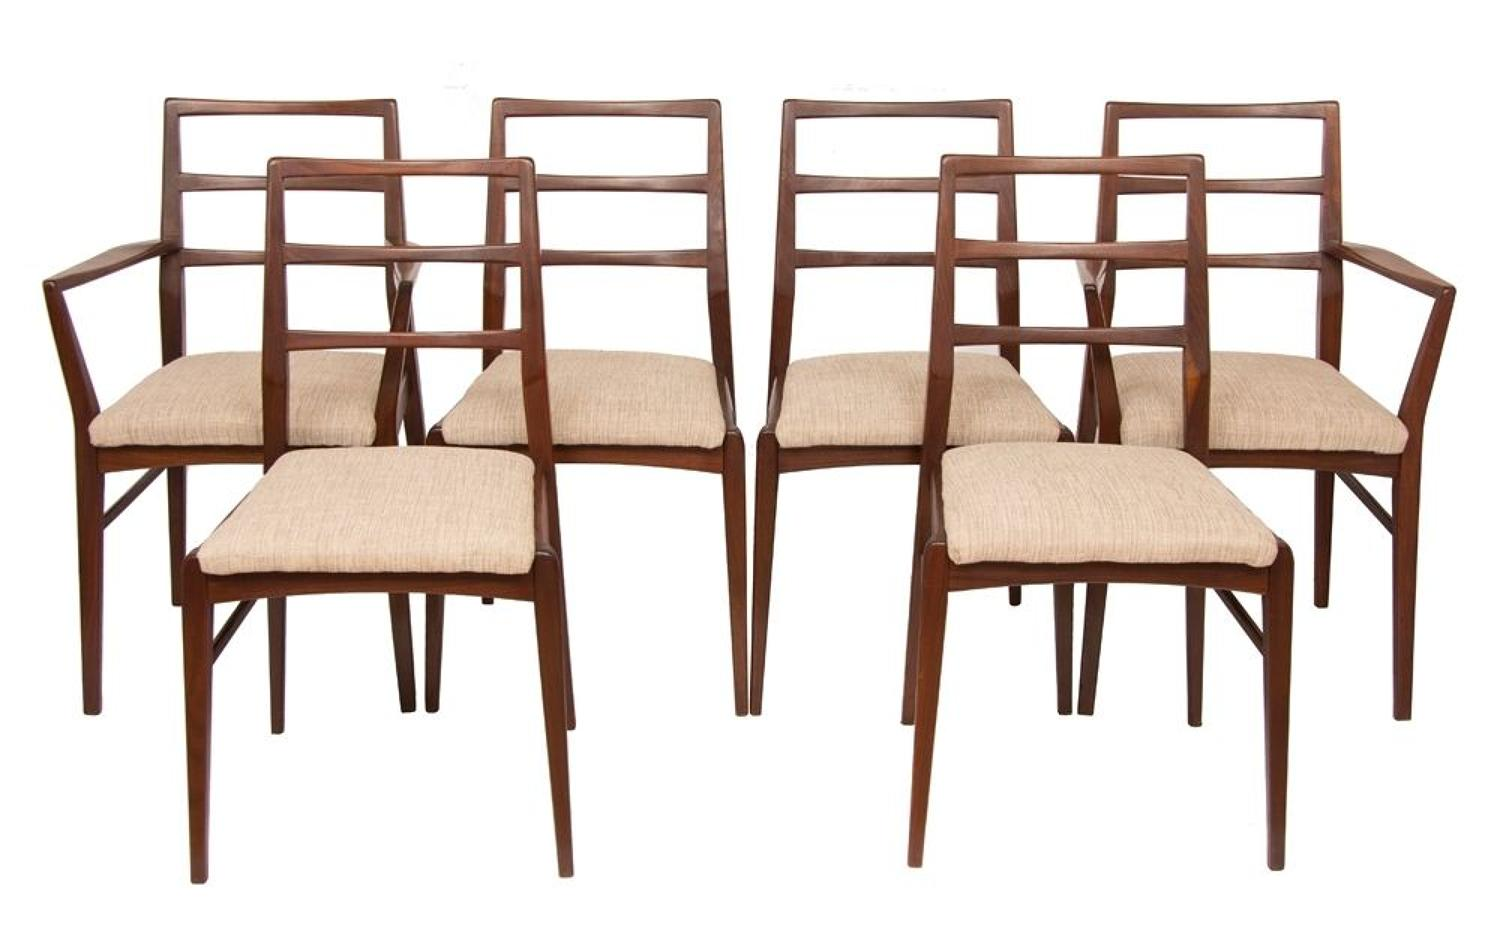 Set of 6 Ladder Back Dining Chairs c.1970